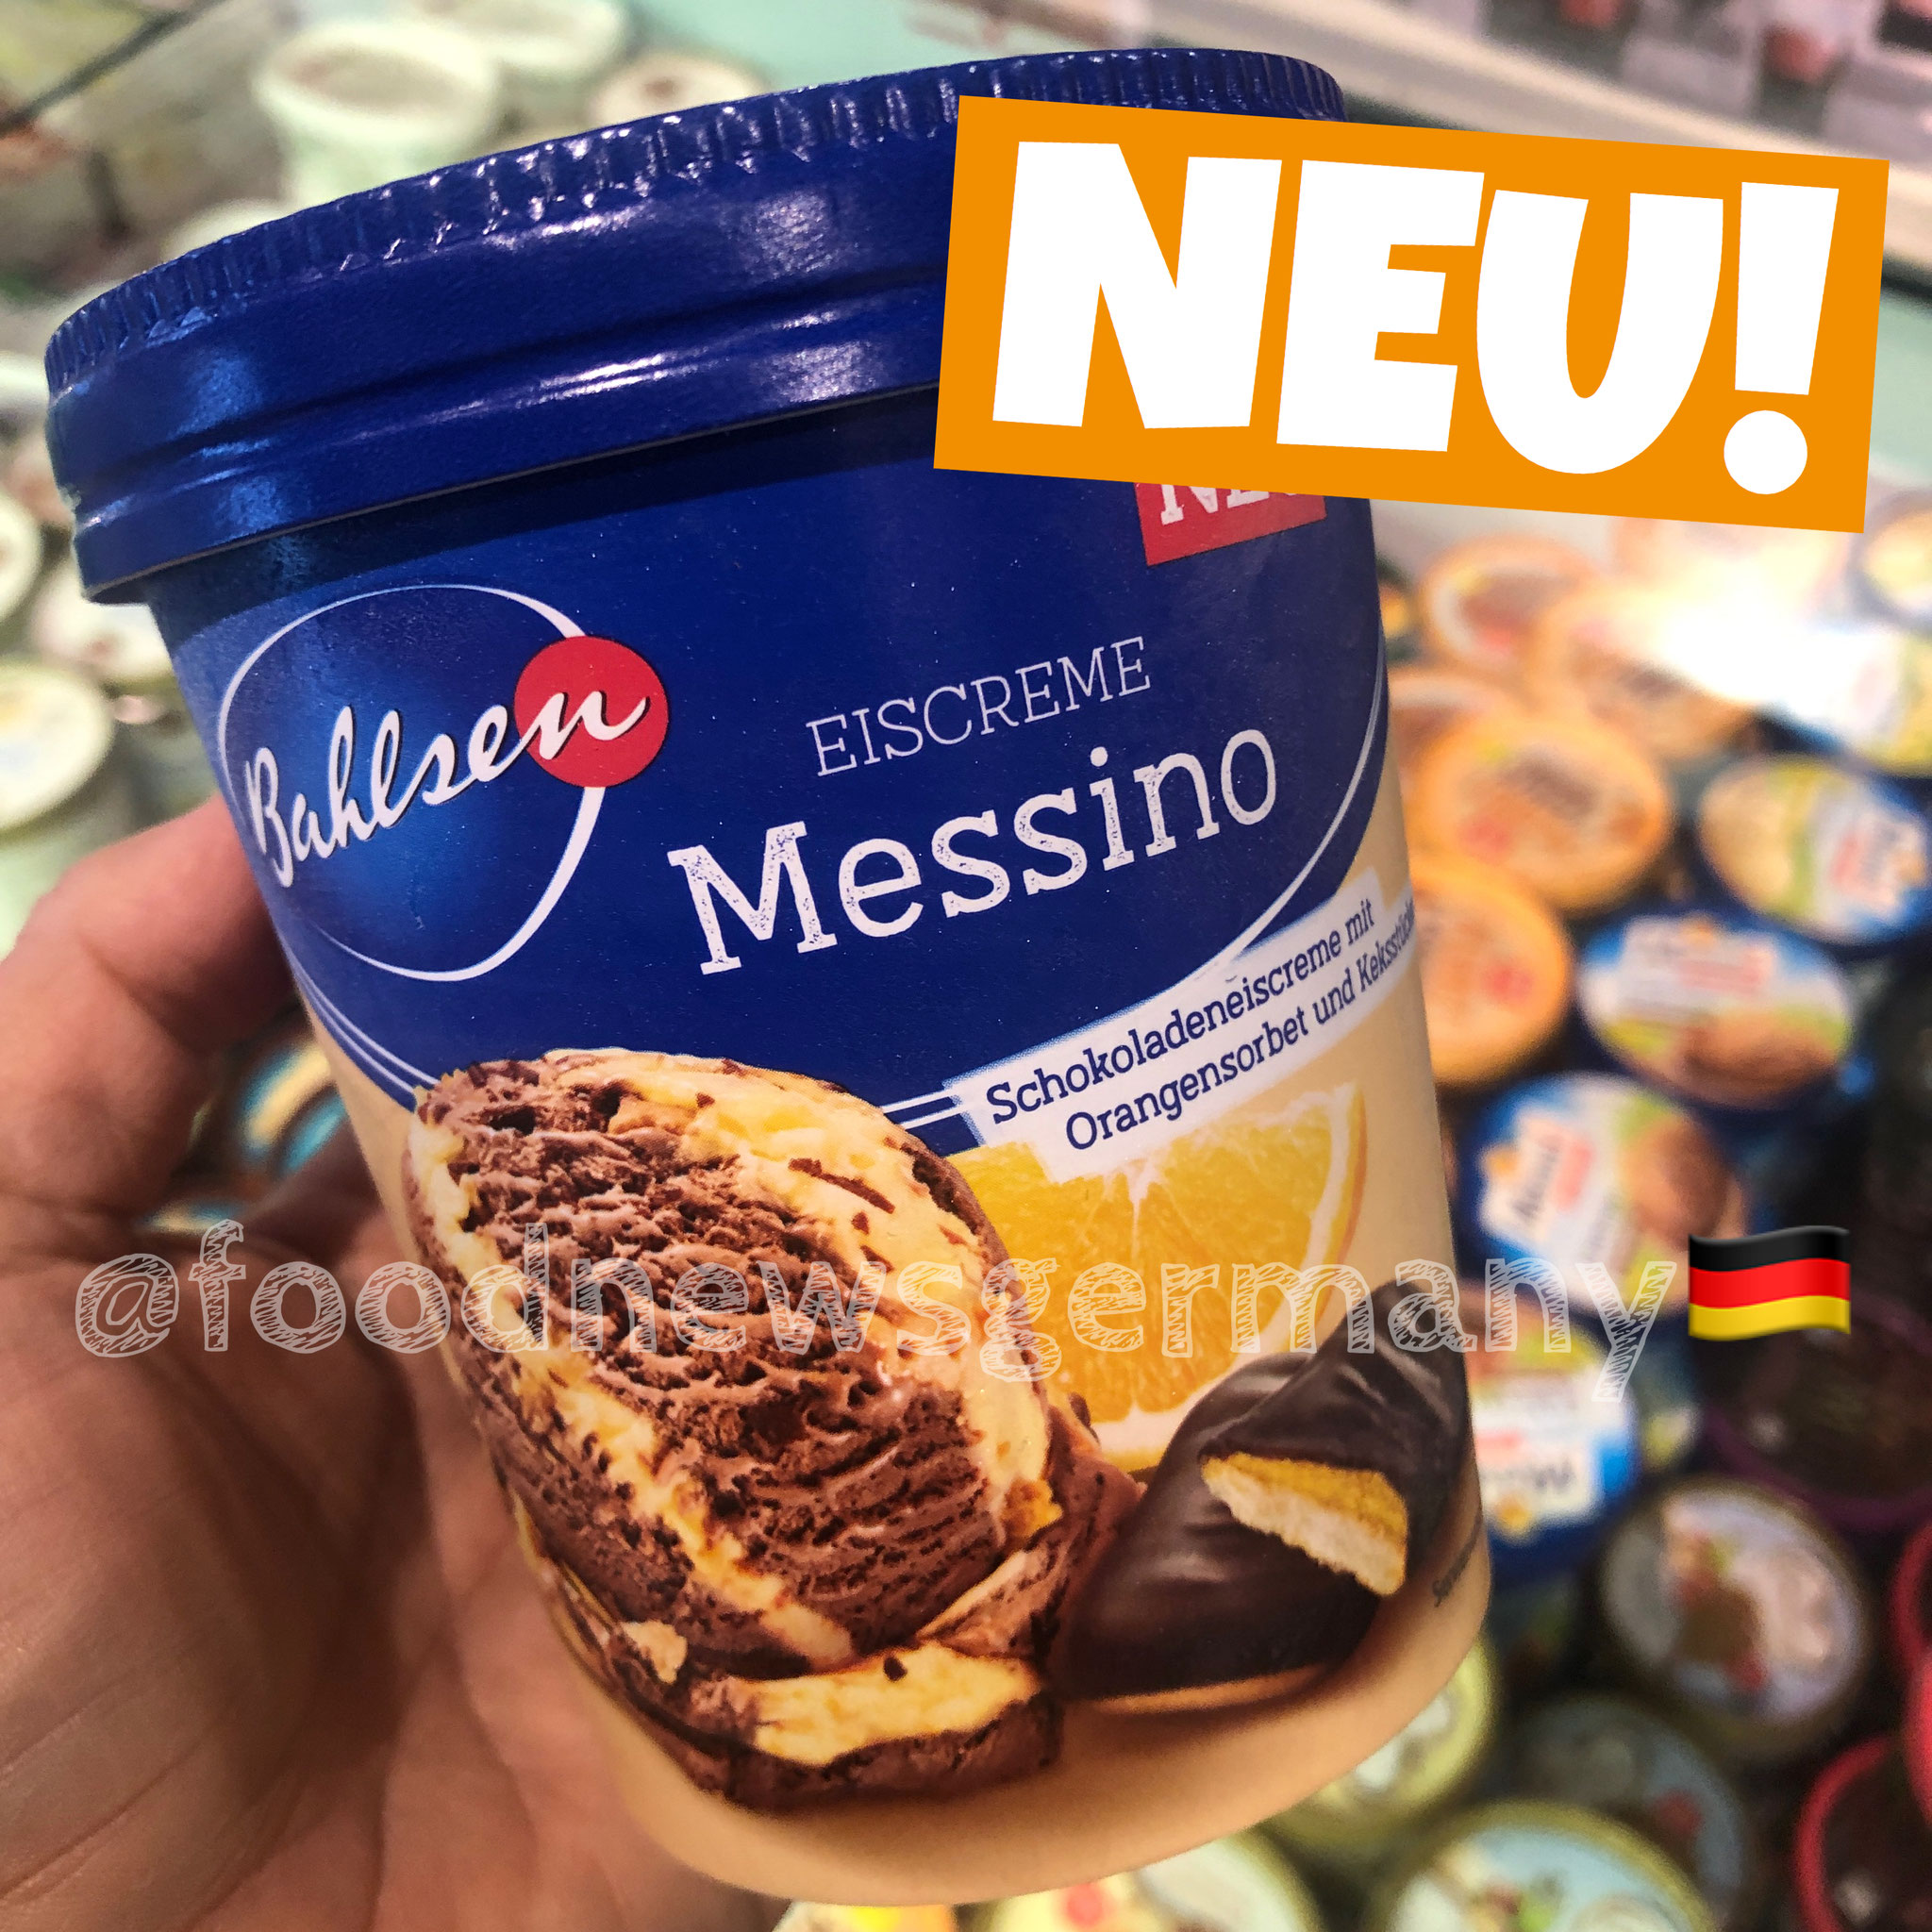 Bahlsen Eiscreme Messino